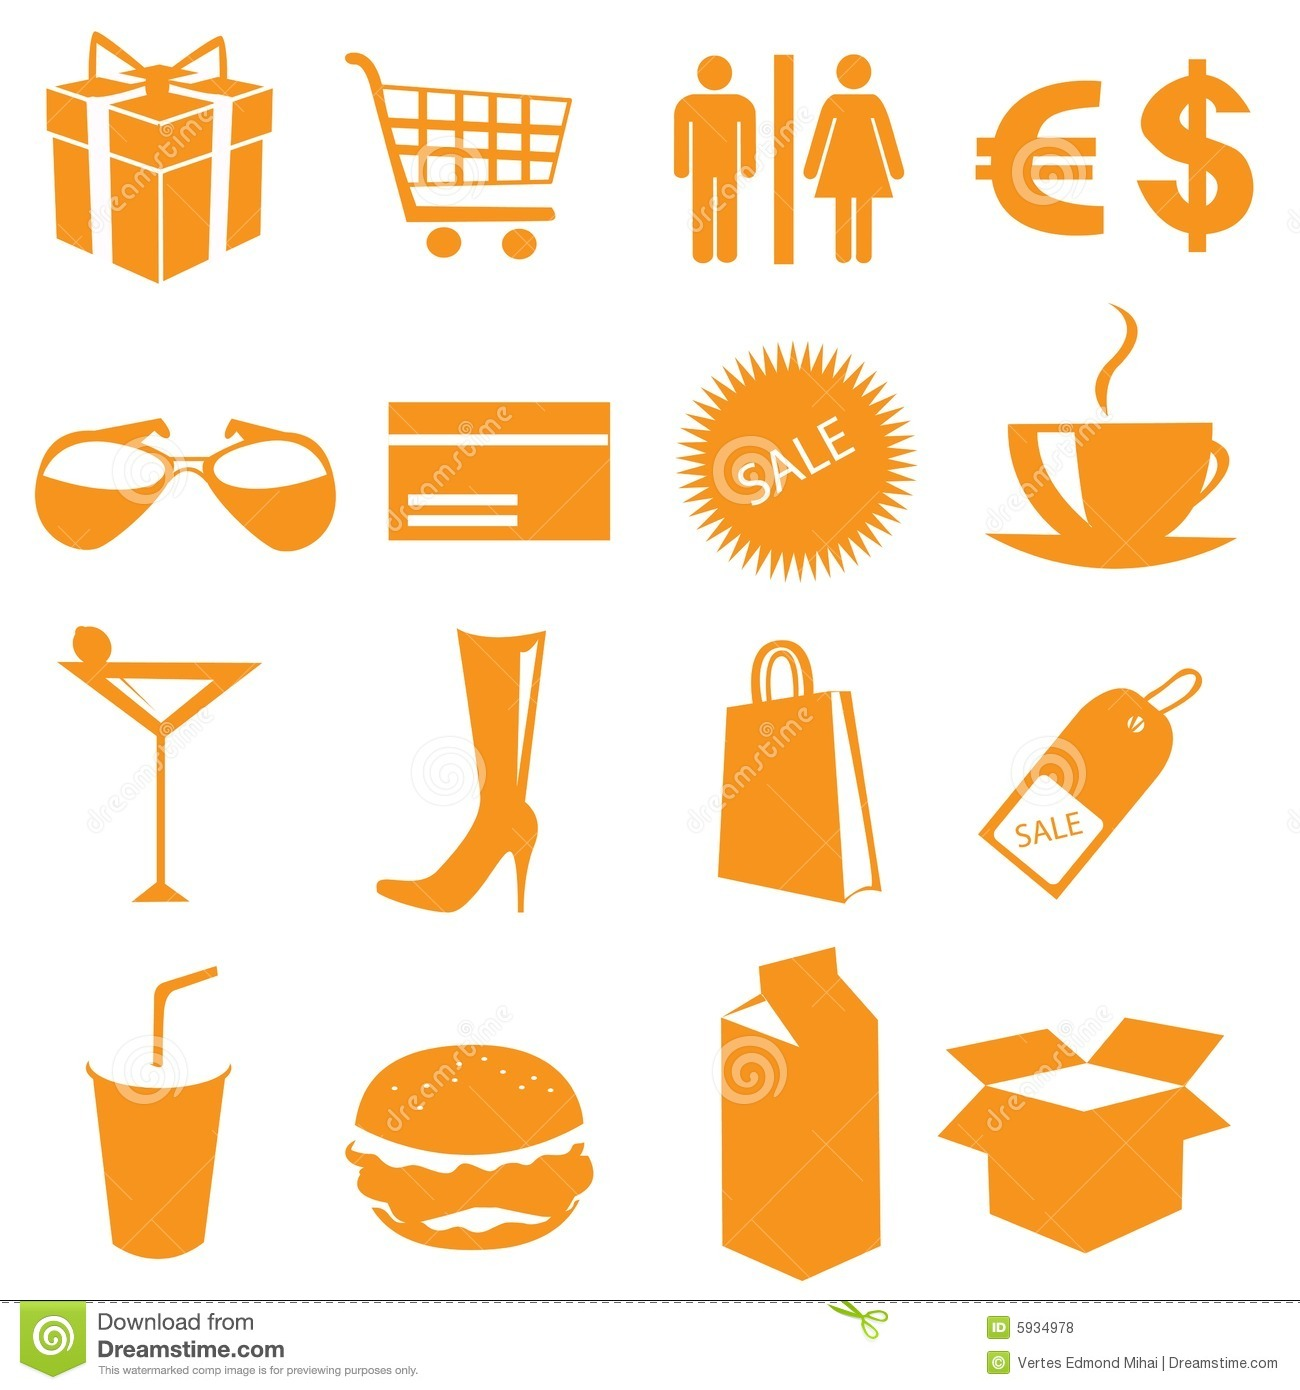 Shopping icons vector stock vector. Image of present ...